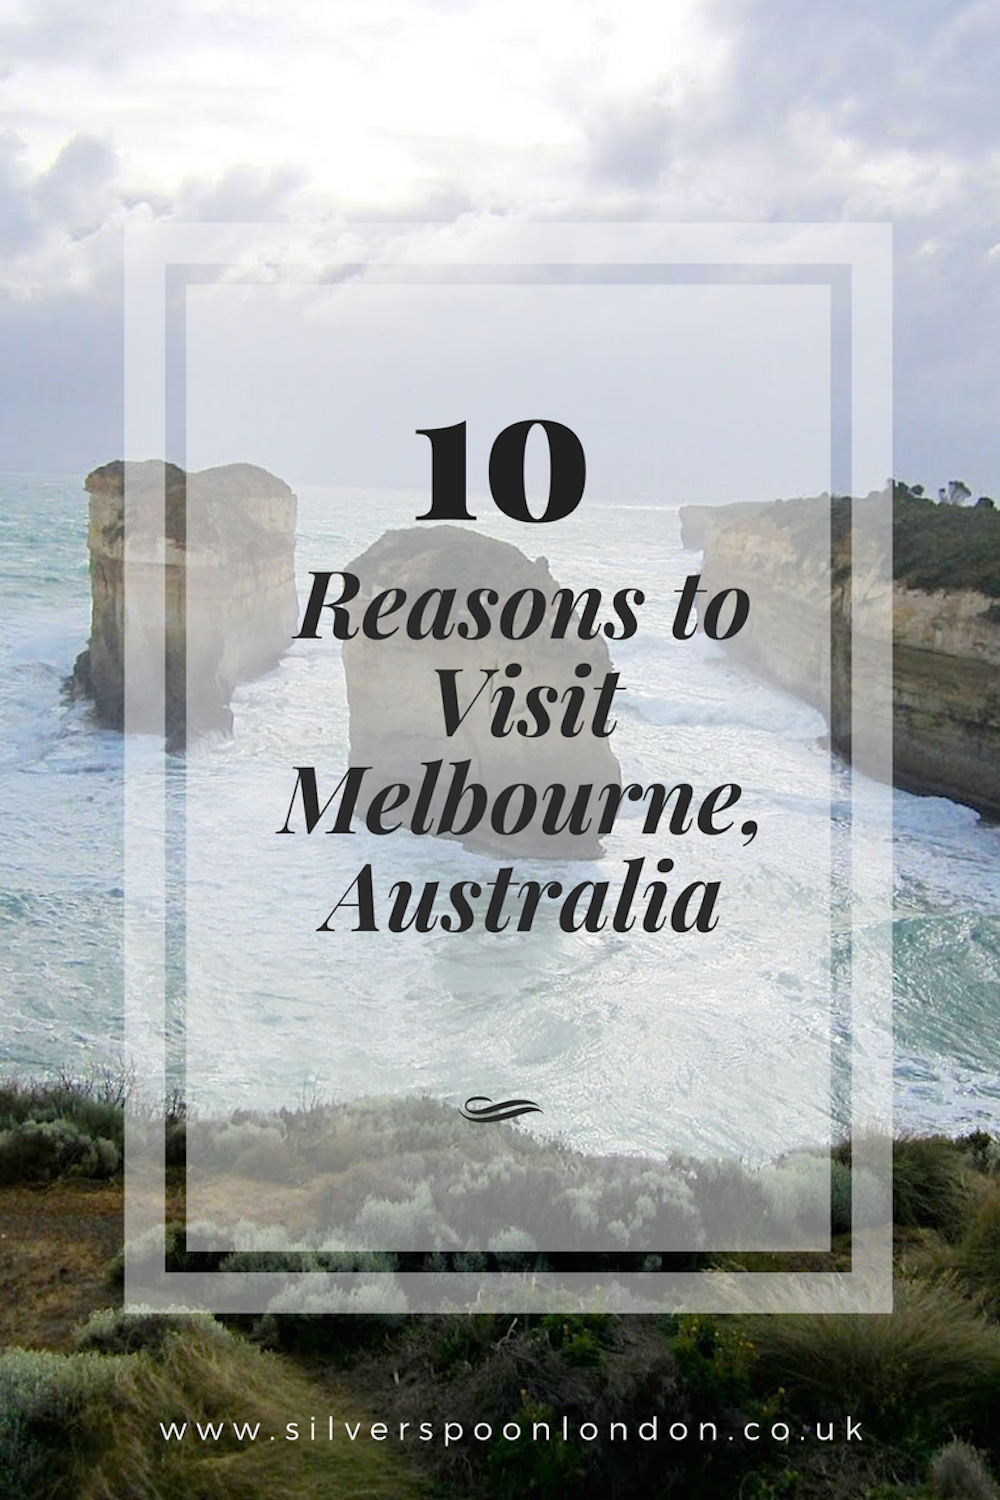 10 Reasons to Visit Melbourne